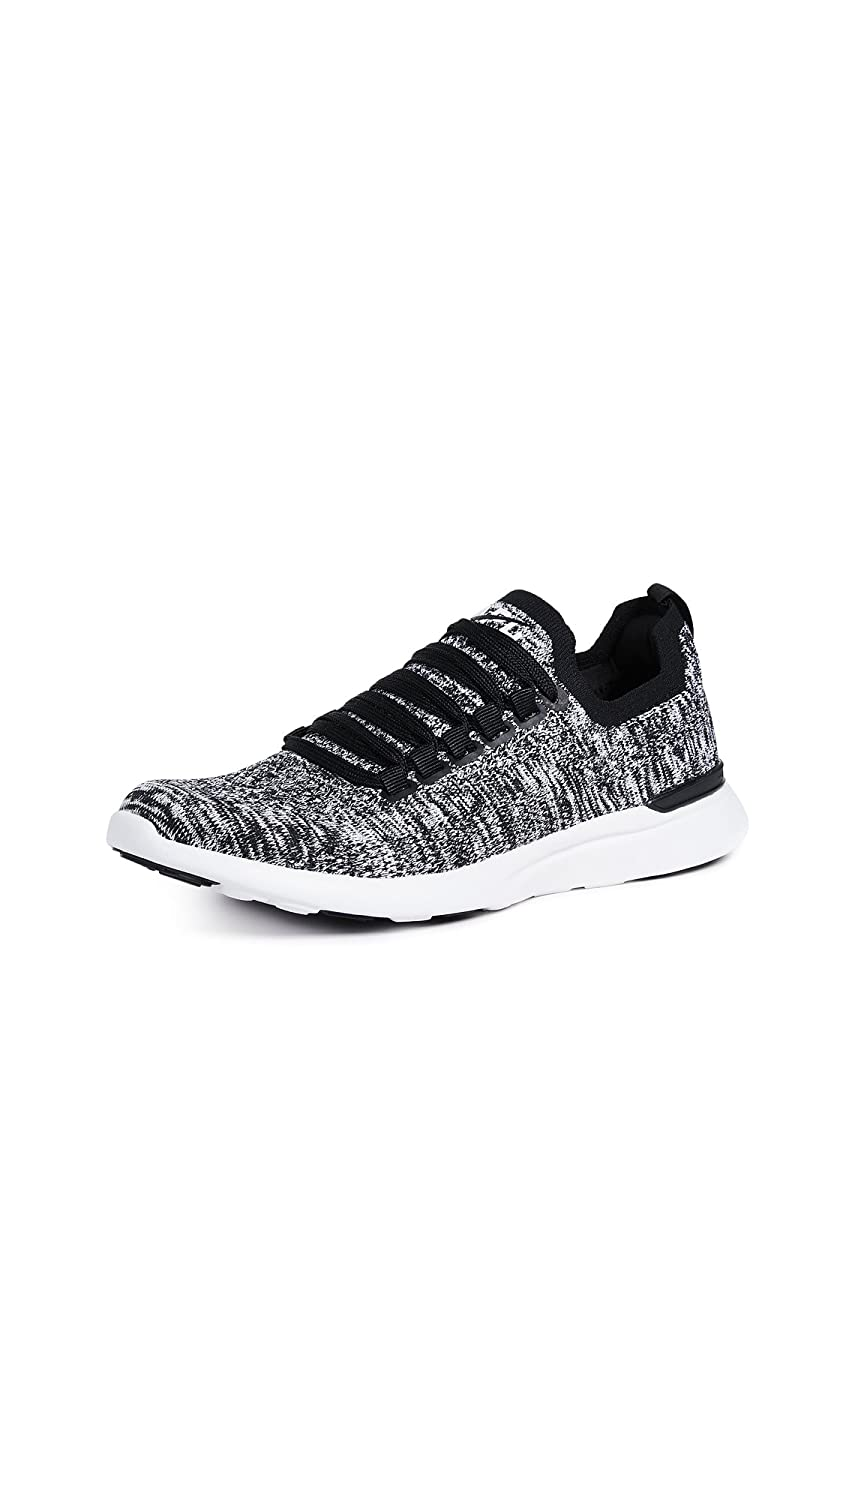 APL: Athletic Propulsion Labs Women's Techloom Breeze Sneakers B07BH3LLF5 7 B(M) US|Black/White/Melange